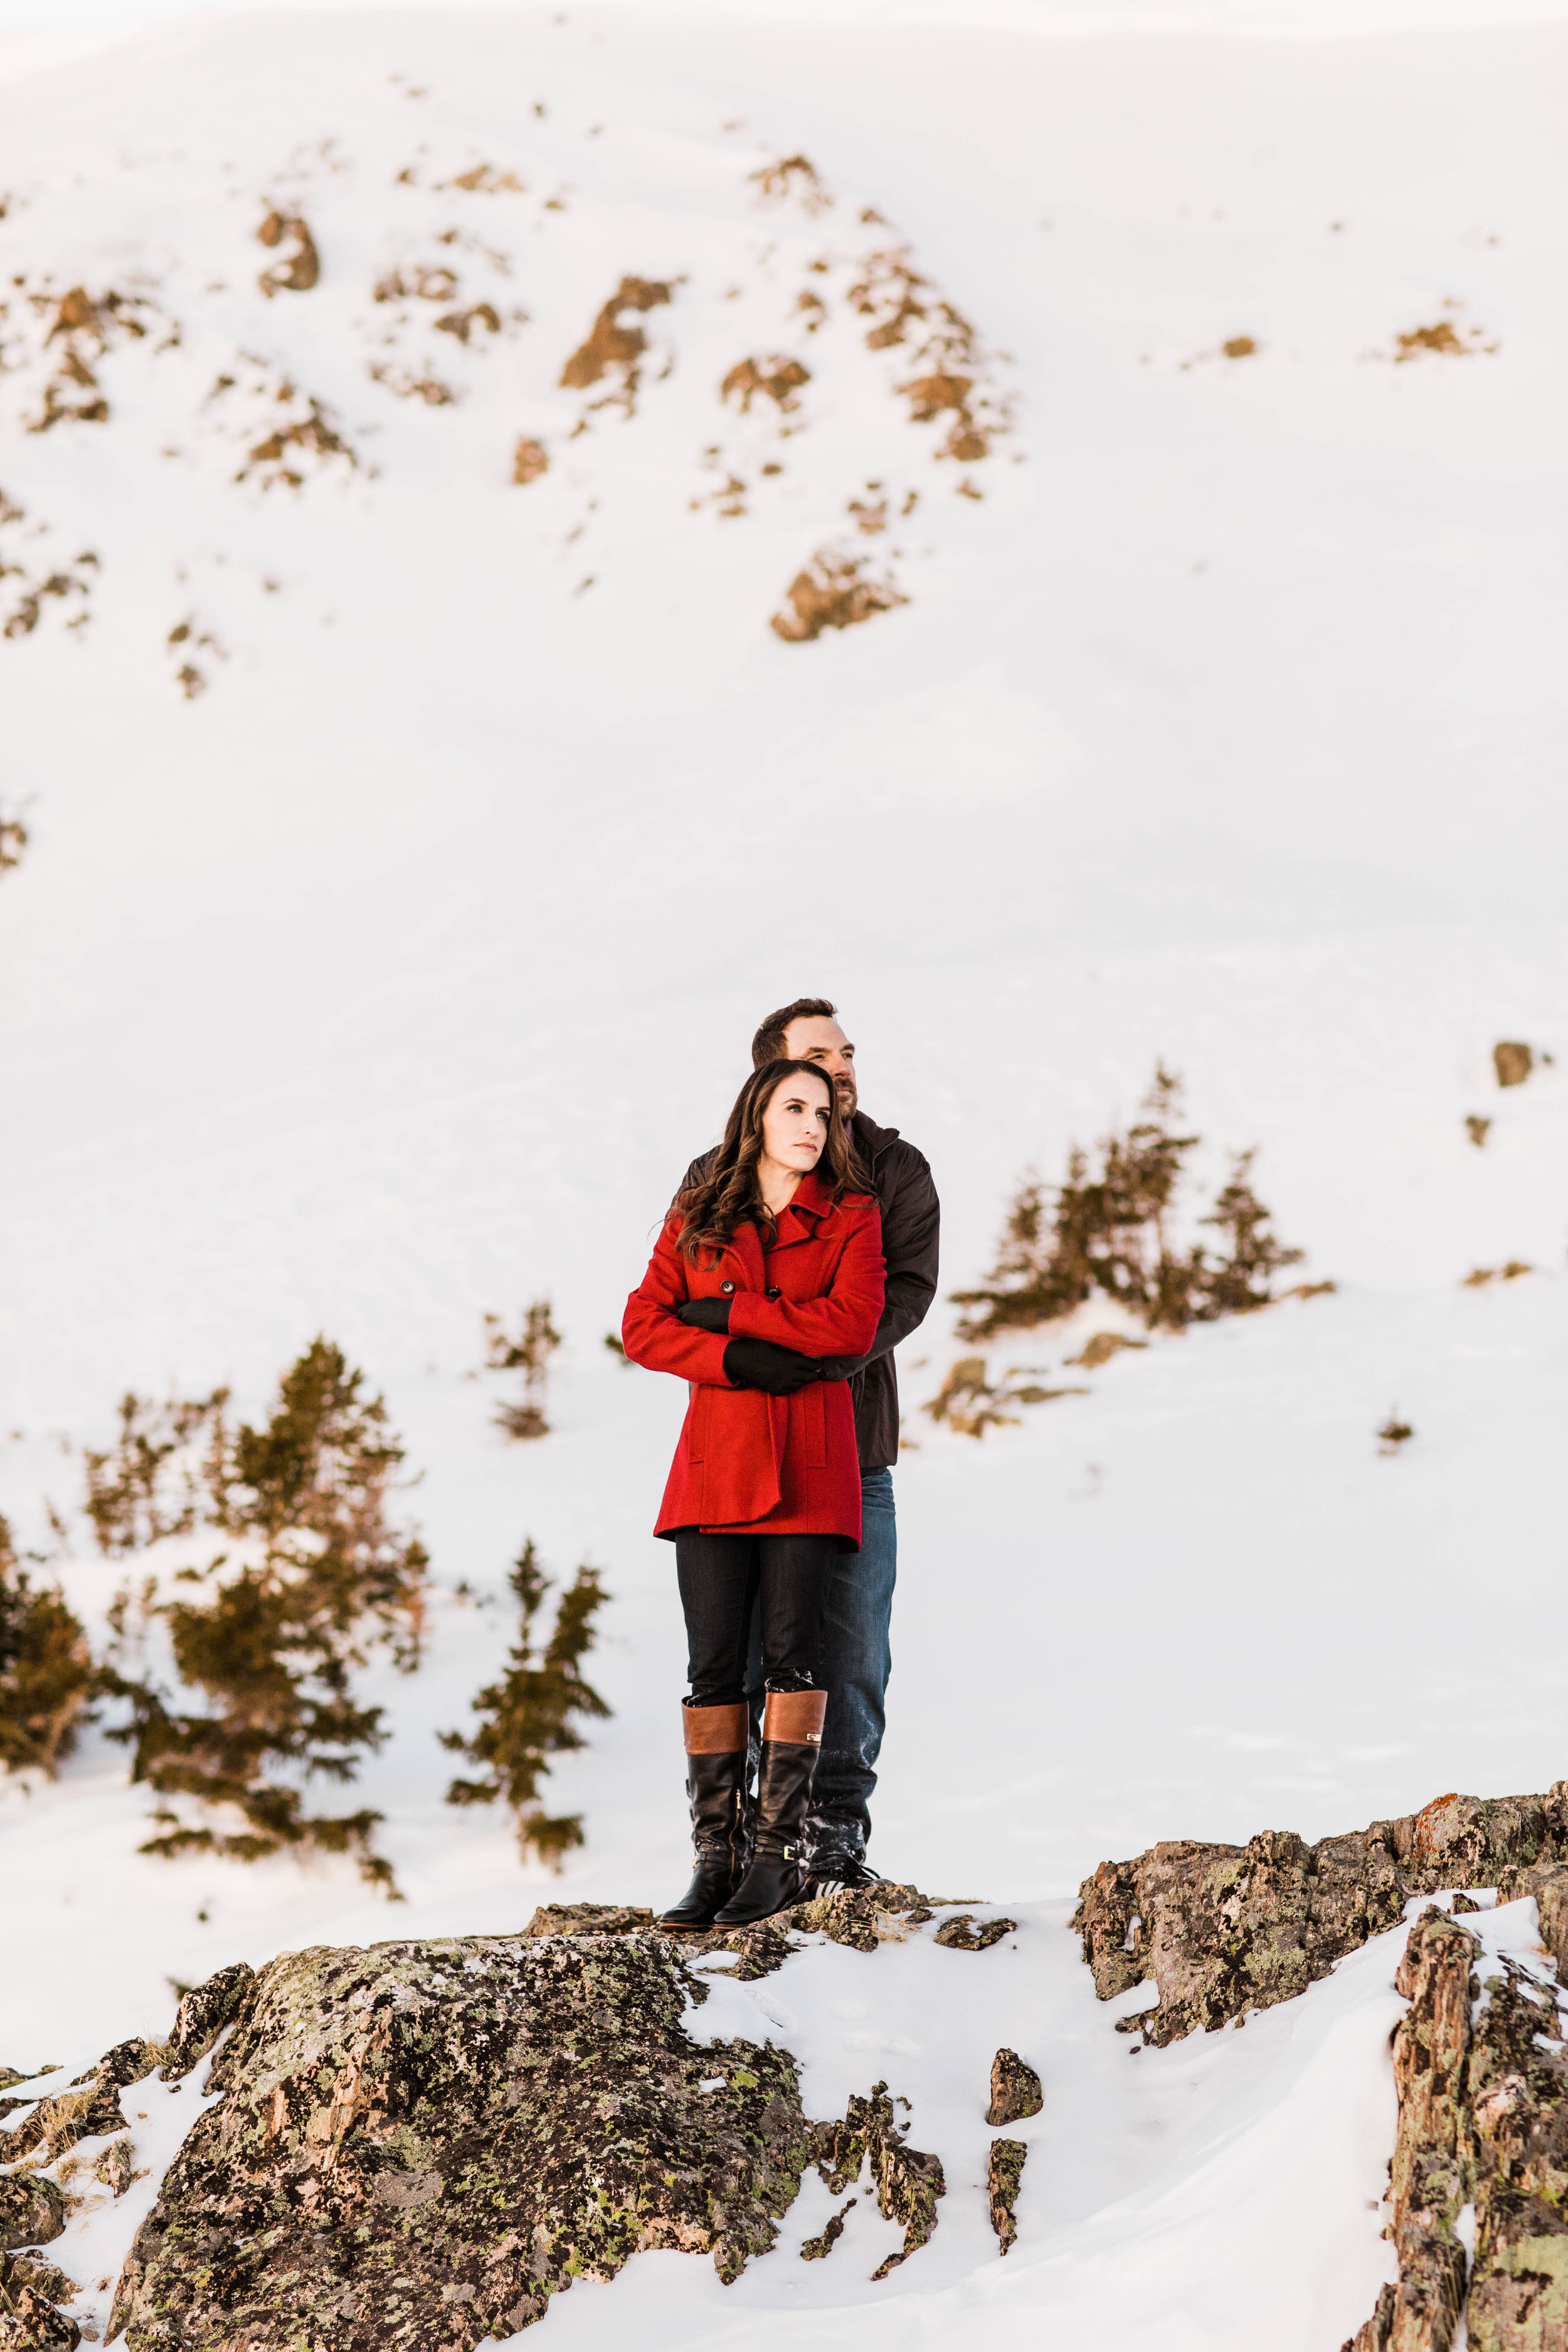 Engagement Session in Aspen Colorado | Winter Elopement Photography in Colorado